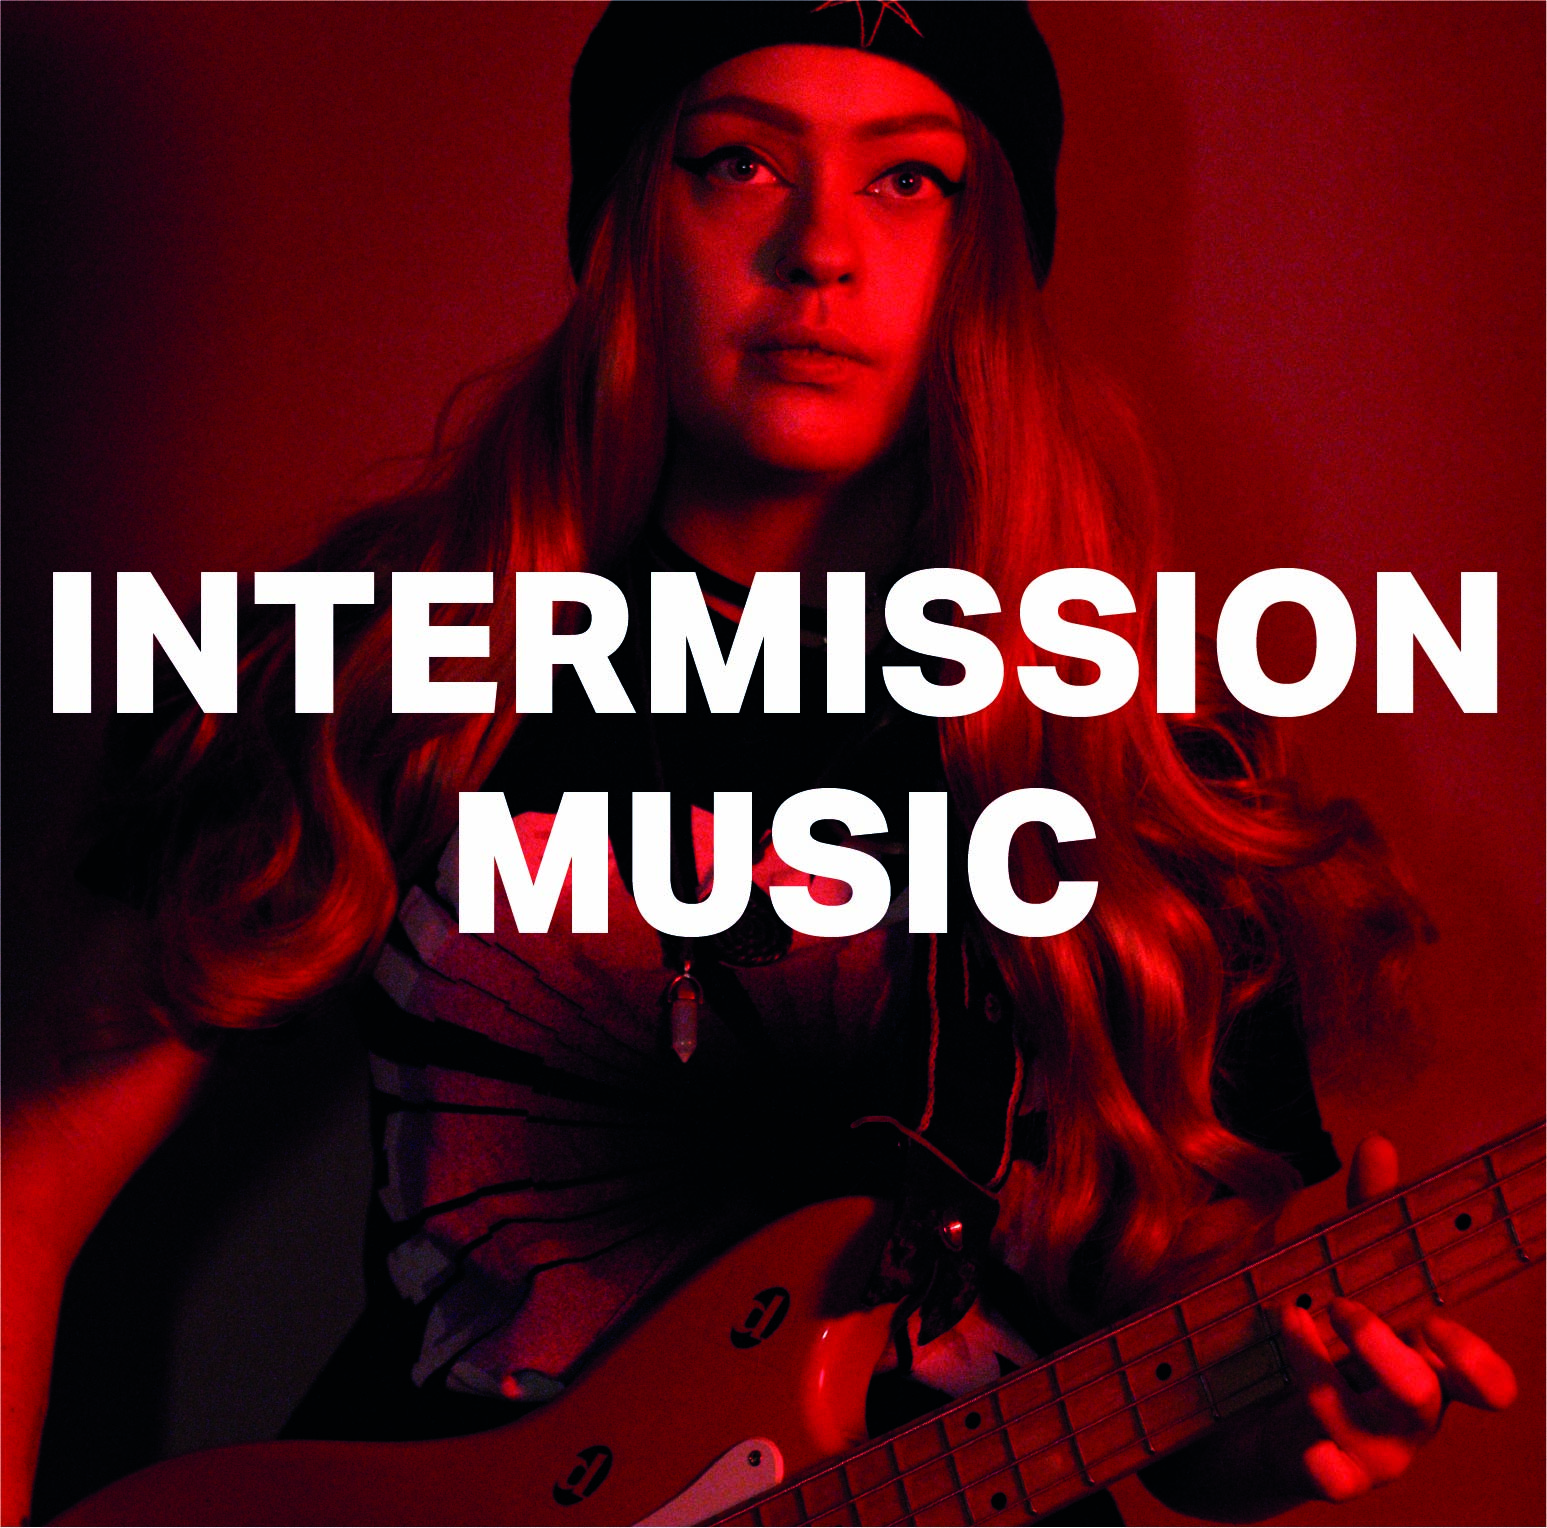 Image of Intermission Music - Digital download